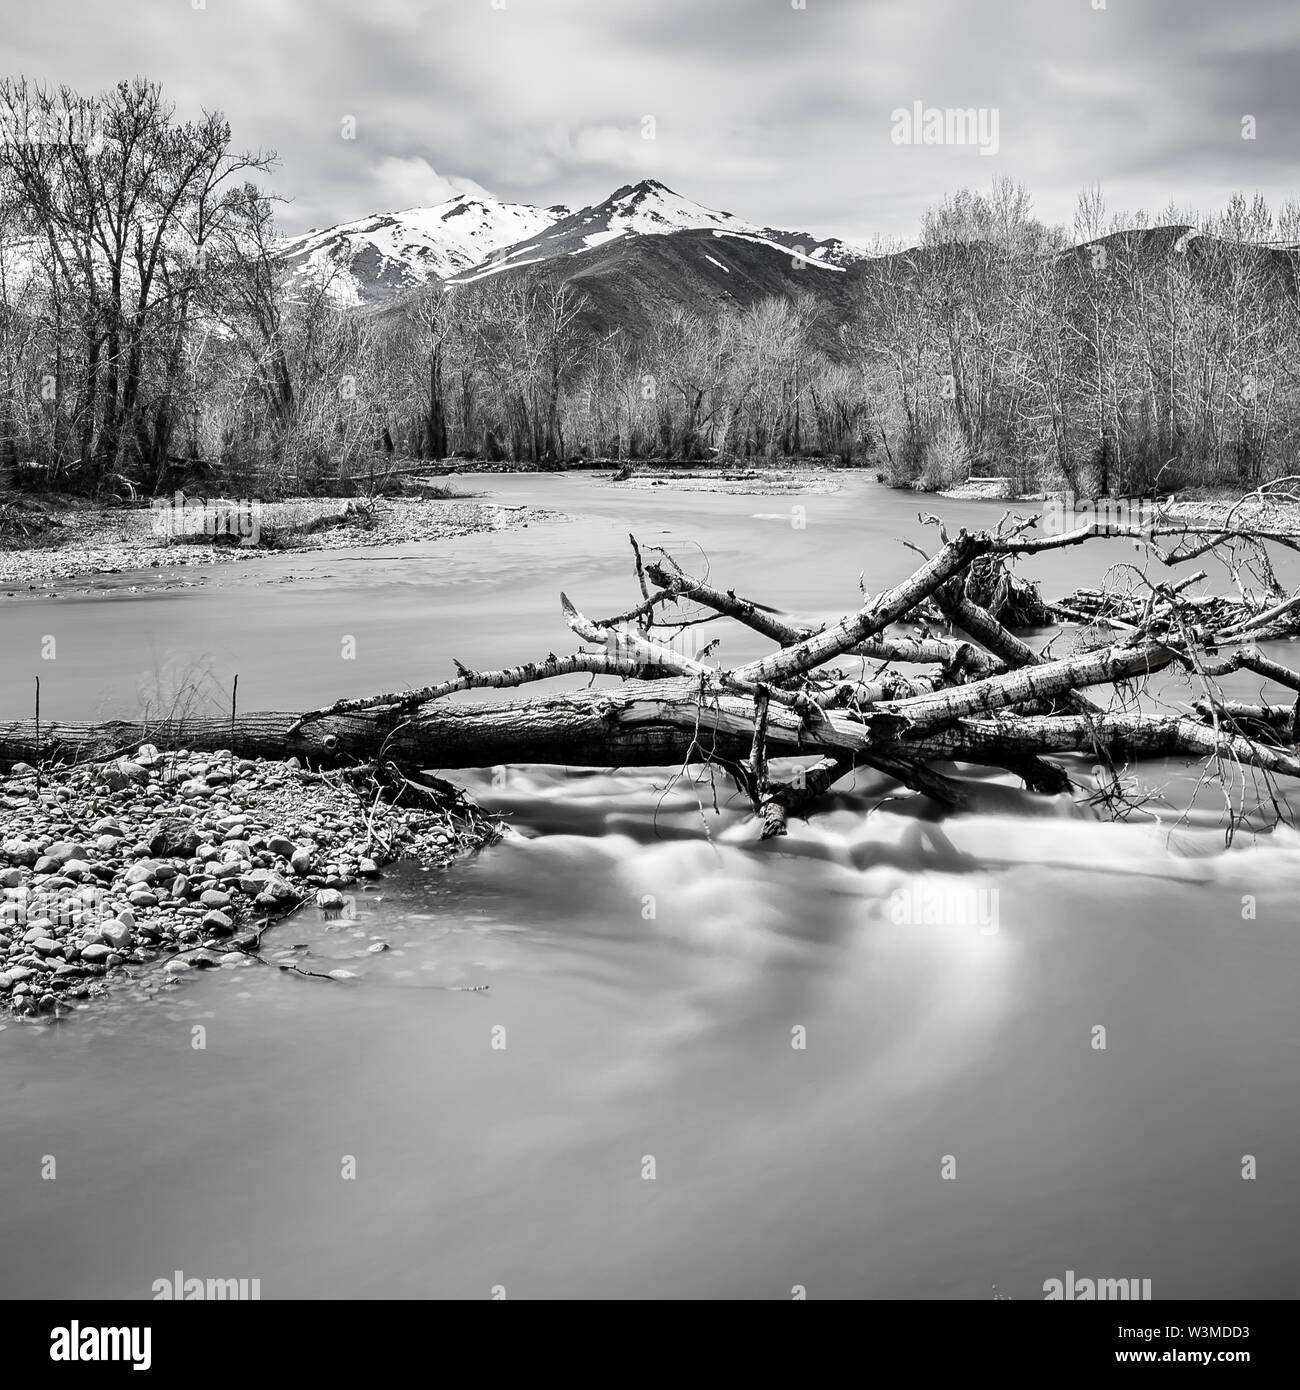 Bare branches in river in Bellevue, Idaho, USA - Stock Image